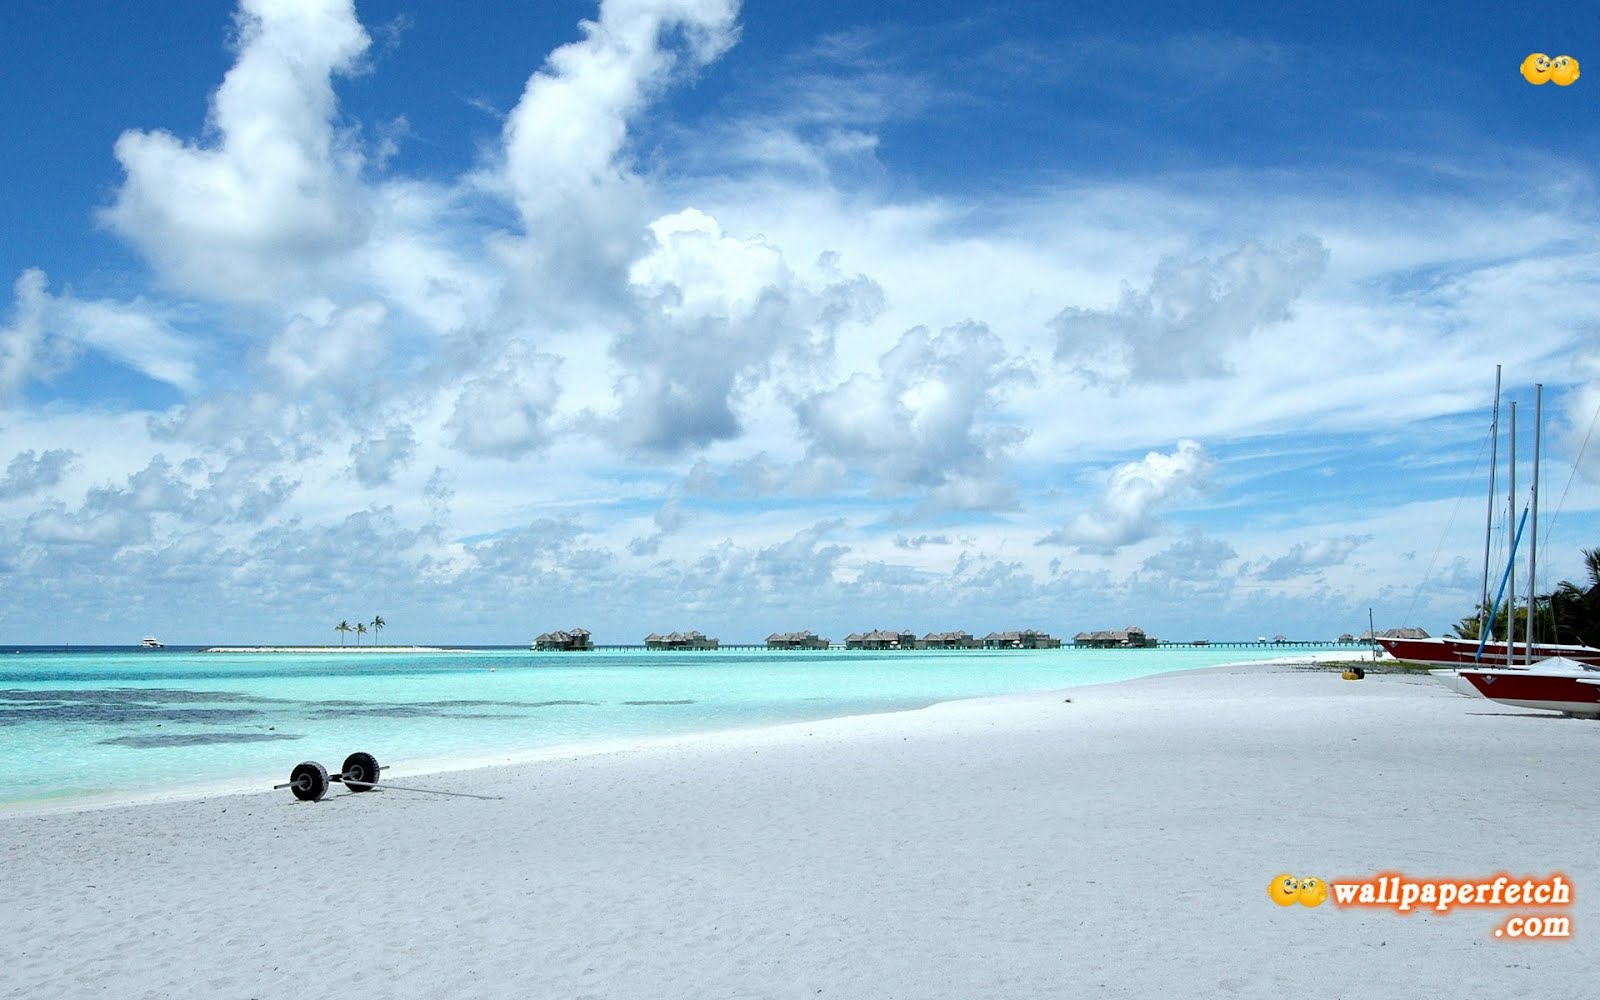 http://2.bp.blogspot.com/-vtTwoU7fv30/UC6laC19eiI/AAAAAAAANmc/k7FG2Kwp2Rk/s1600/the-maldives-wallpapers_4199_1920x1200.jpg